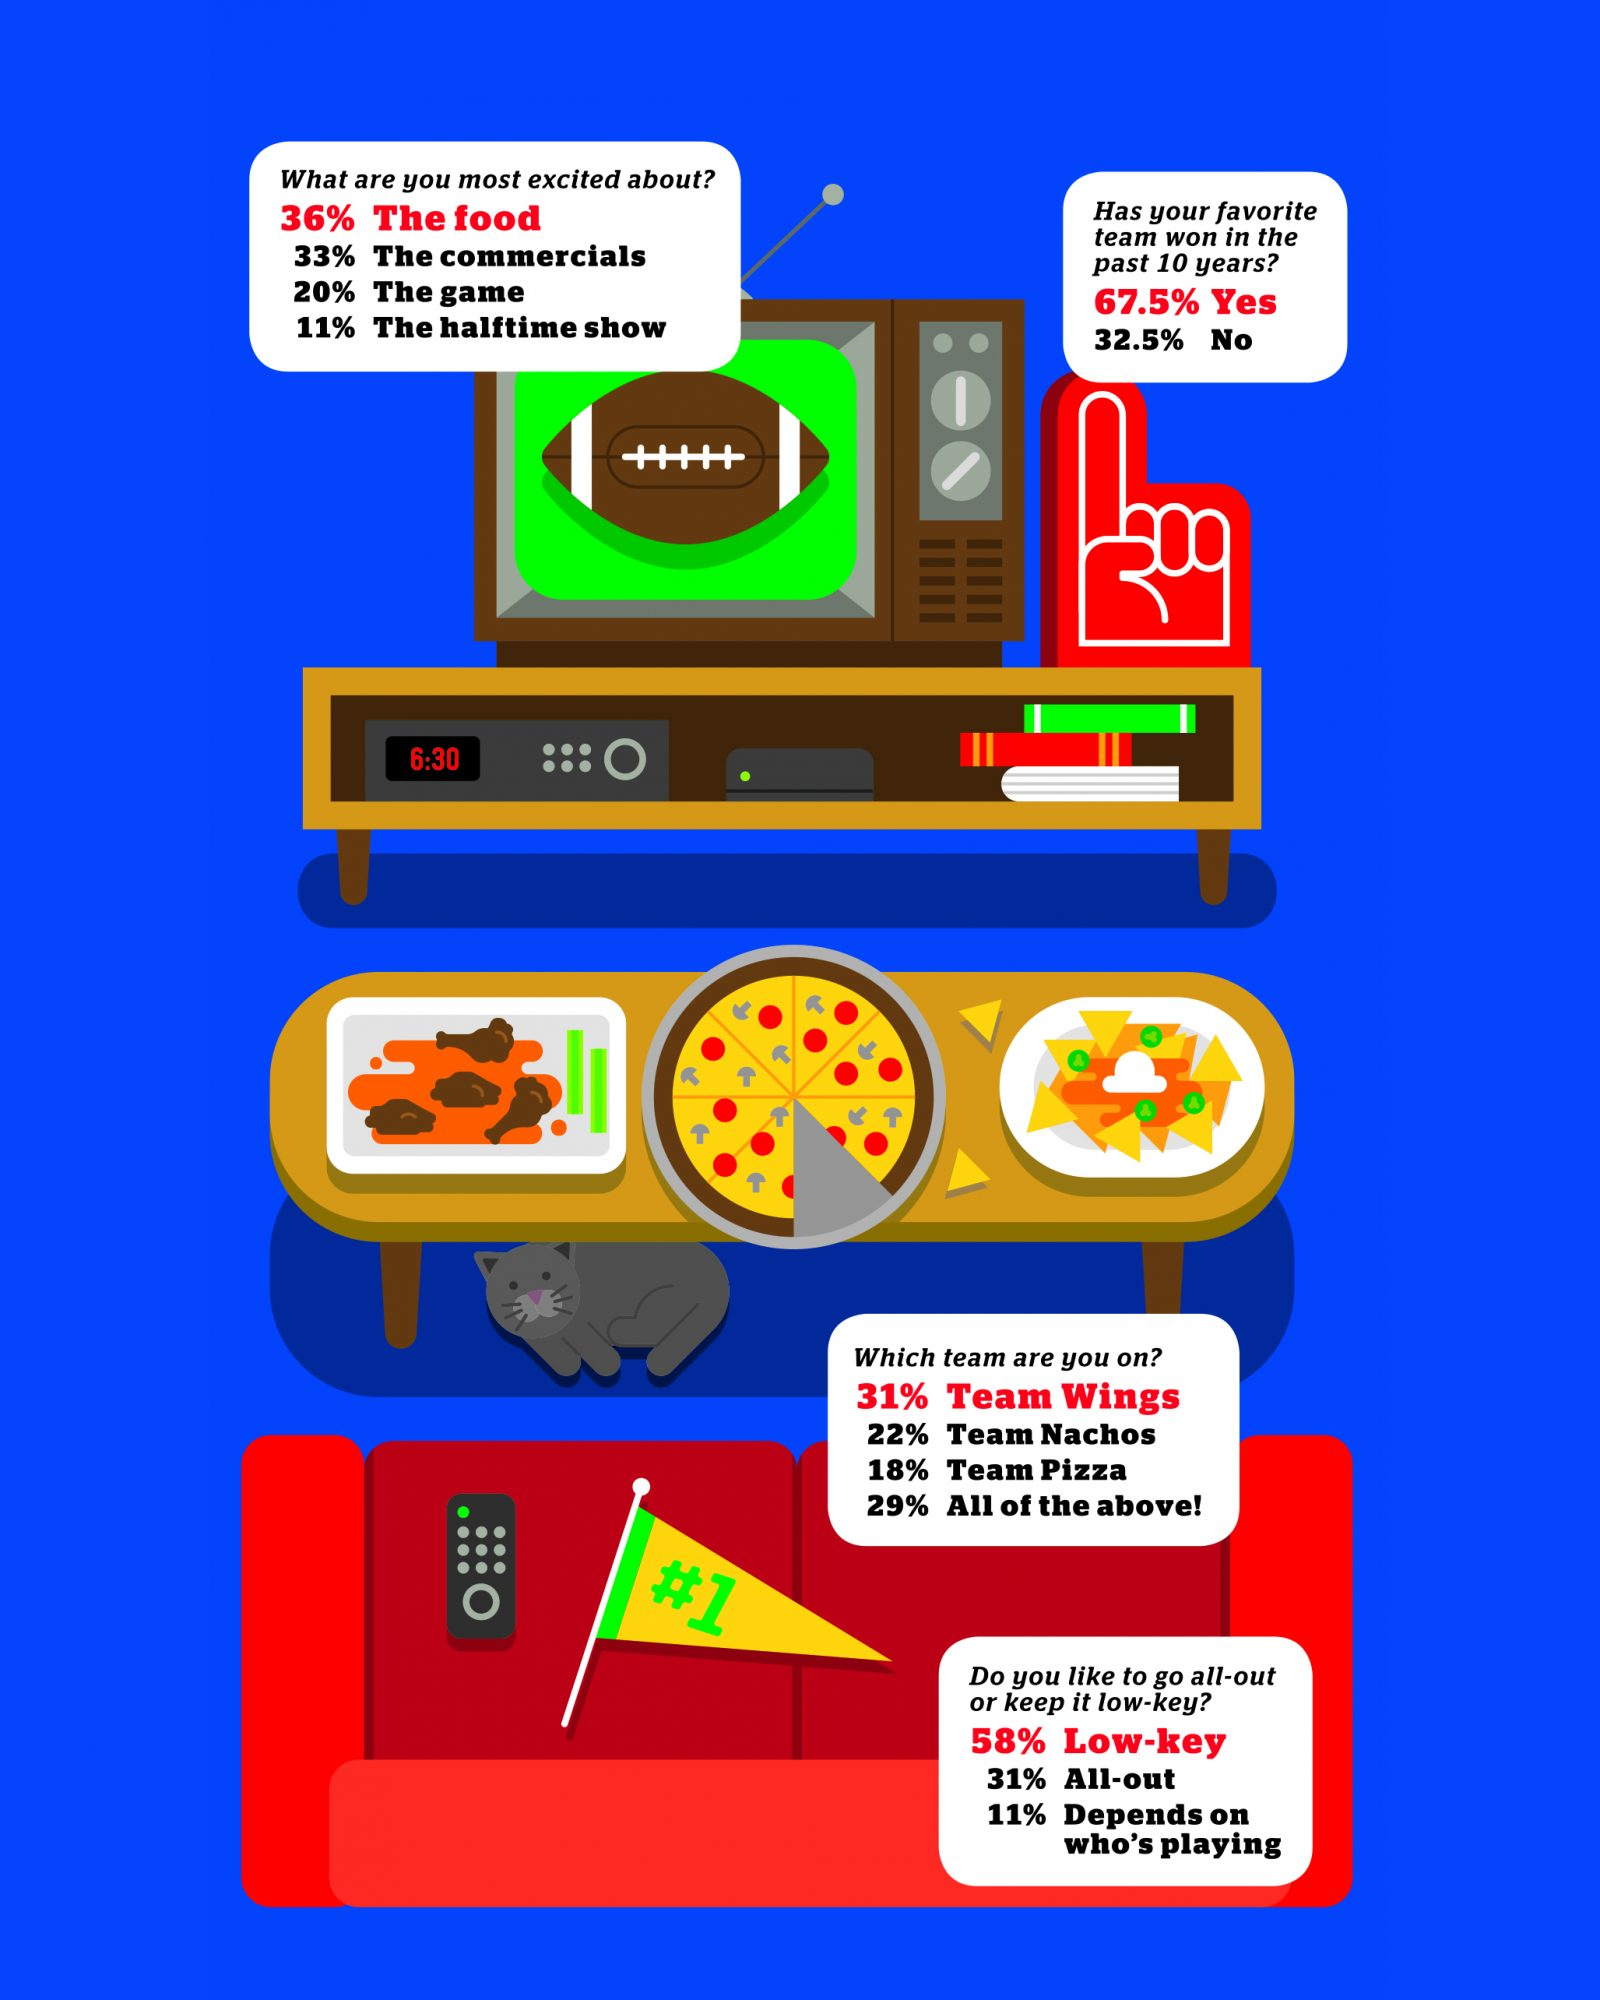 whats your gameplan super bowl traditions